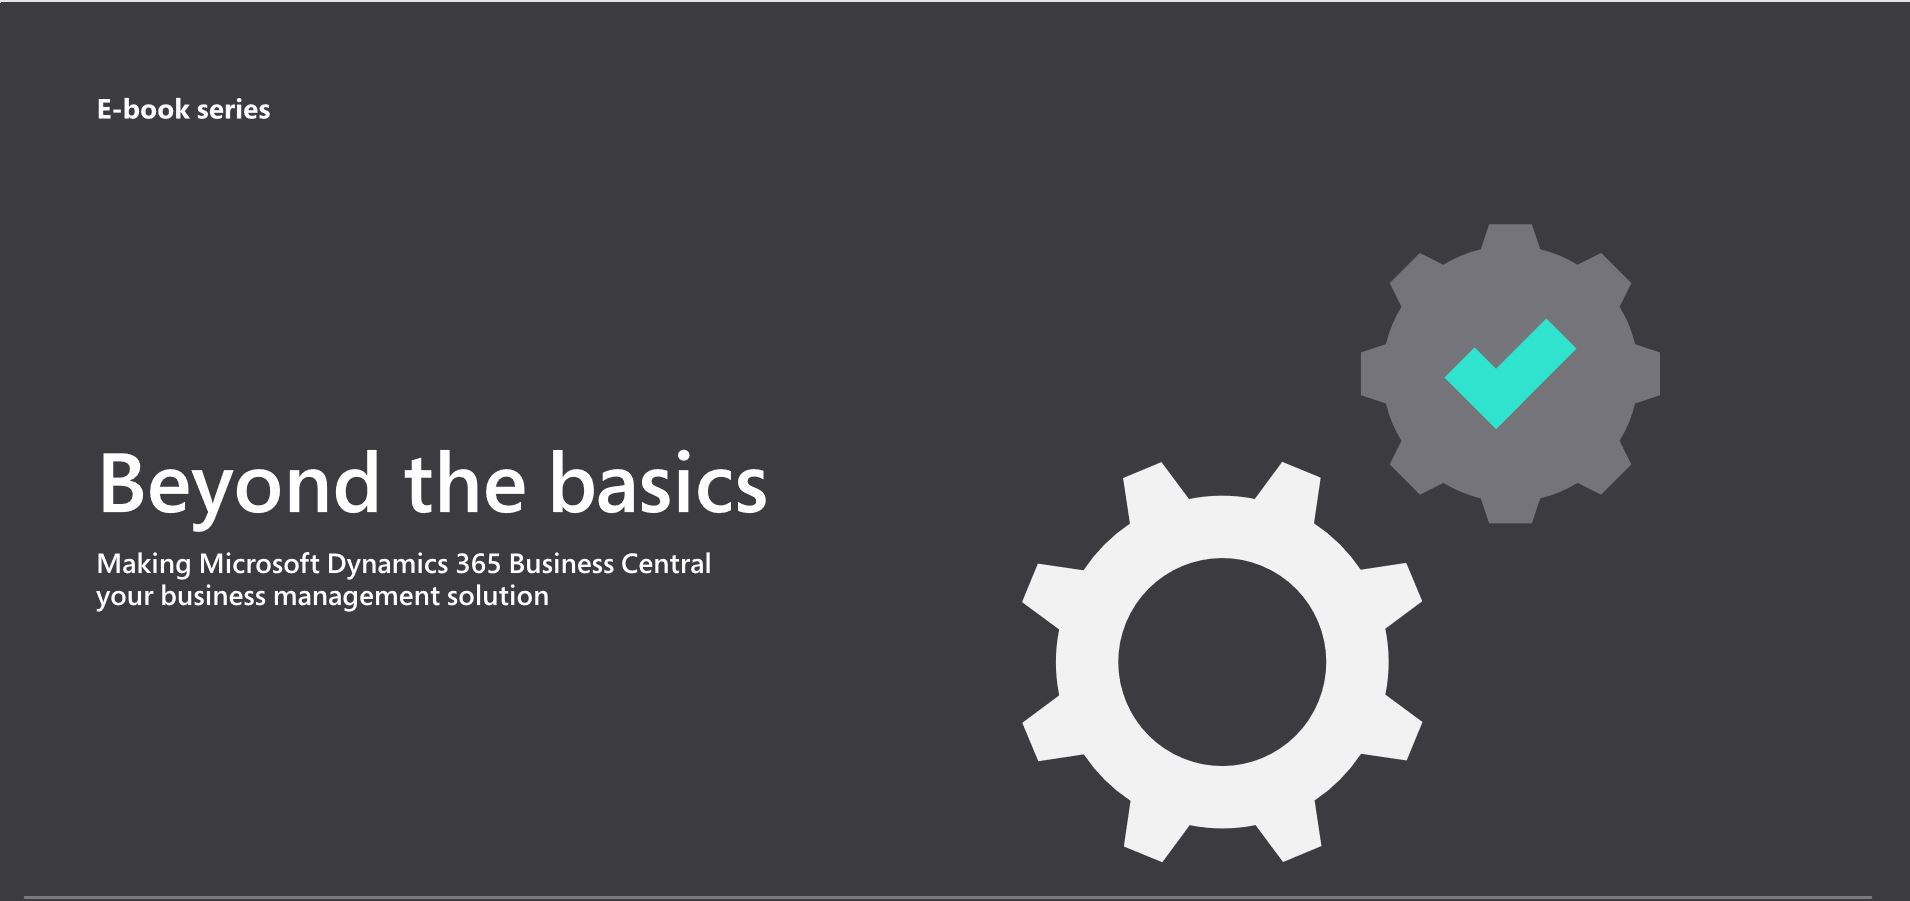 Making Microsoft Dynamics 365 Business Central your business management solution